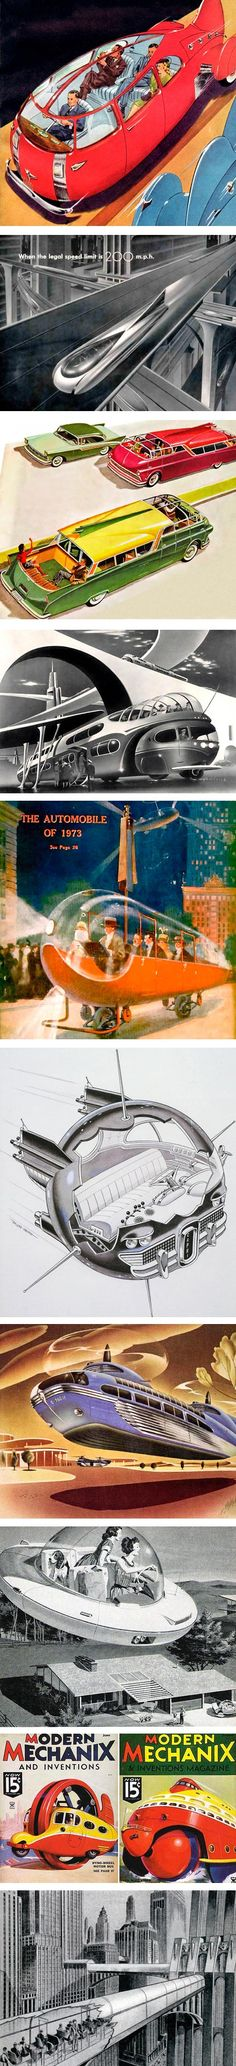 Retro Future Transportation Art on DRB